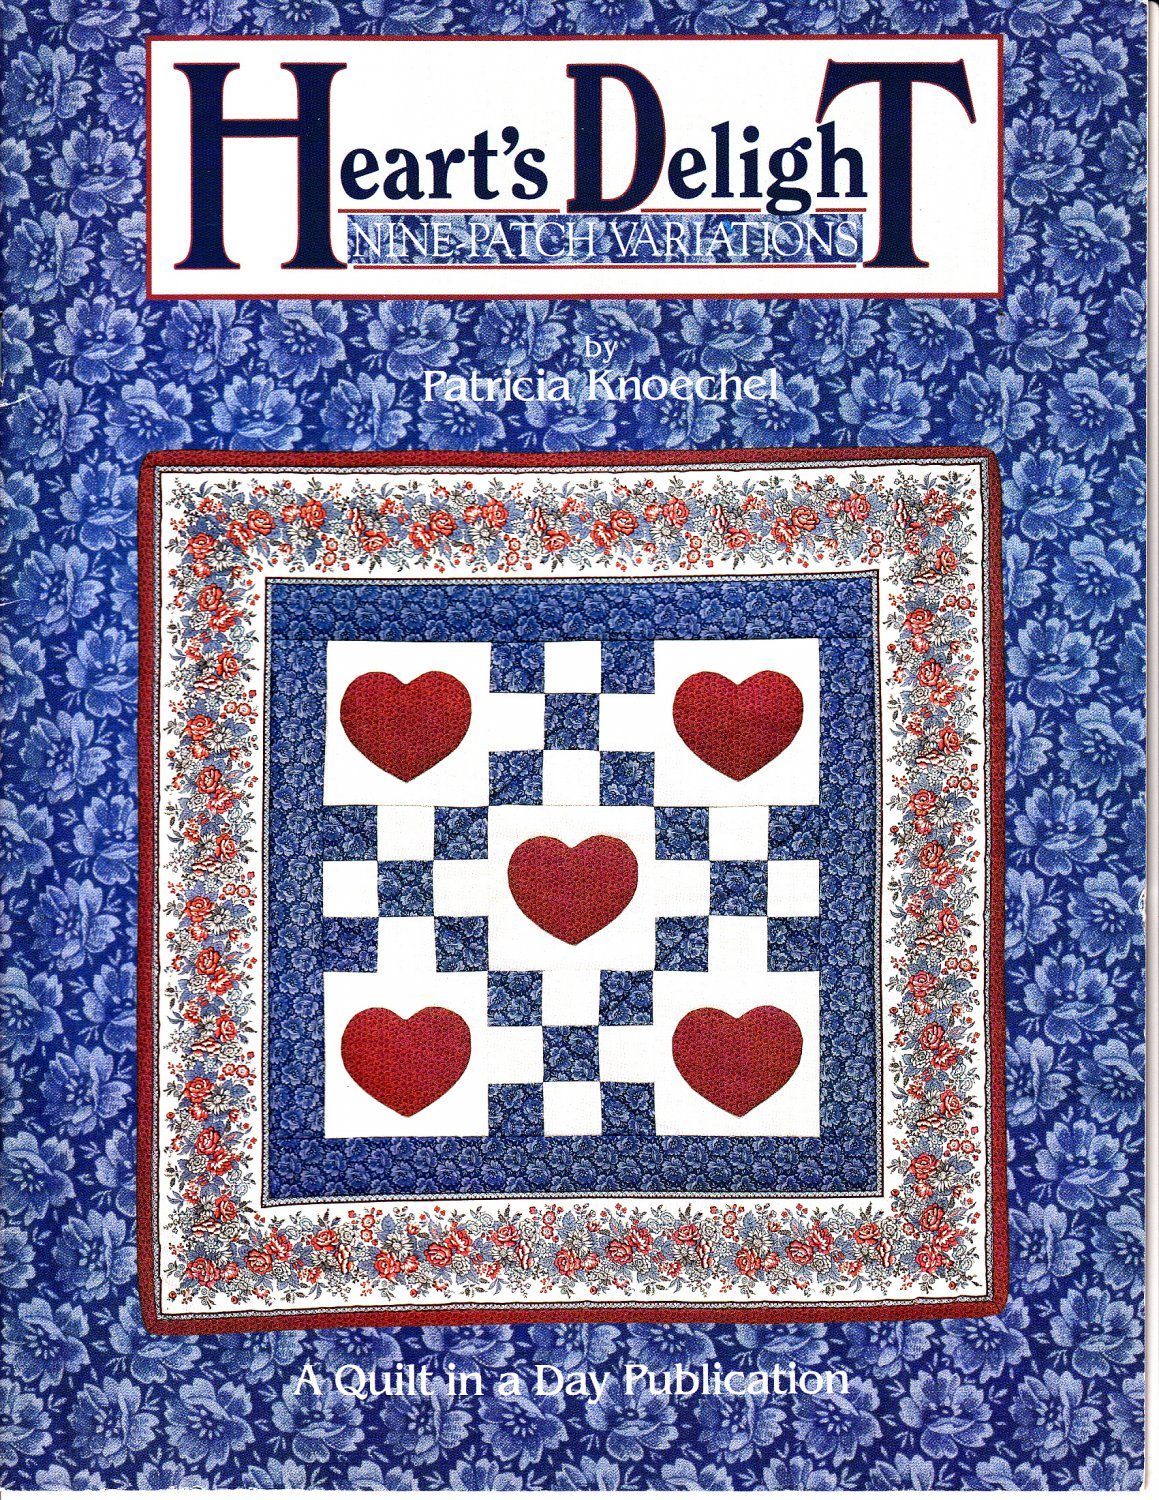 Heart's Delight: Nine-Patch Variations by Patricia Knoechel (Quilt in a Day, 1991)